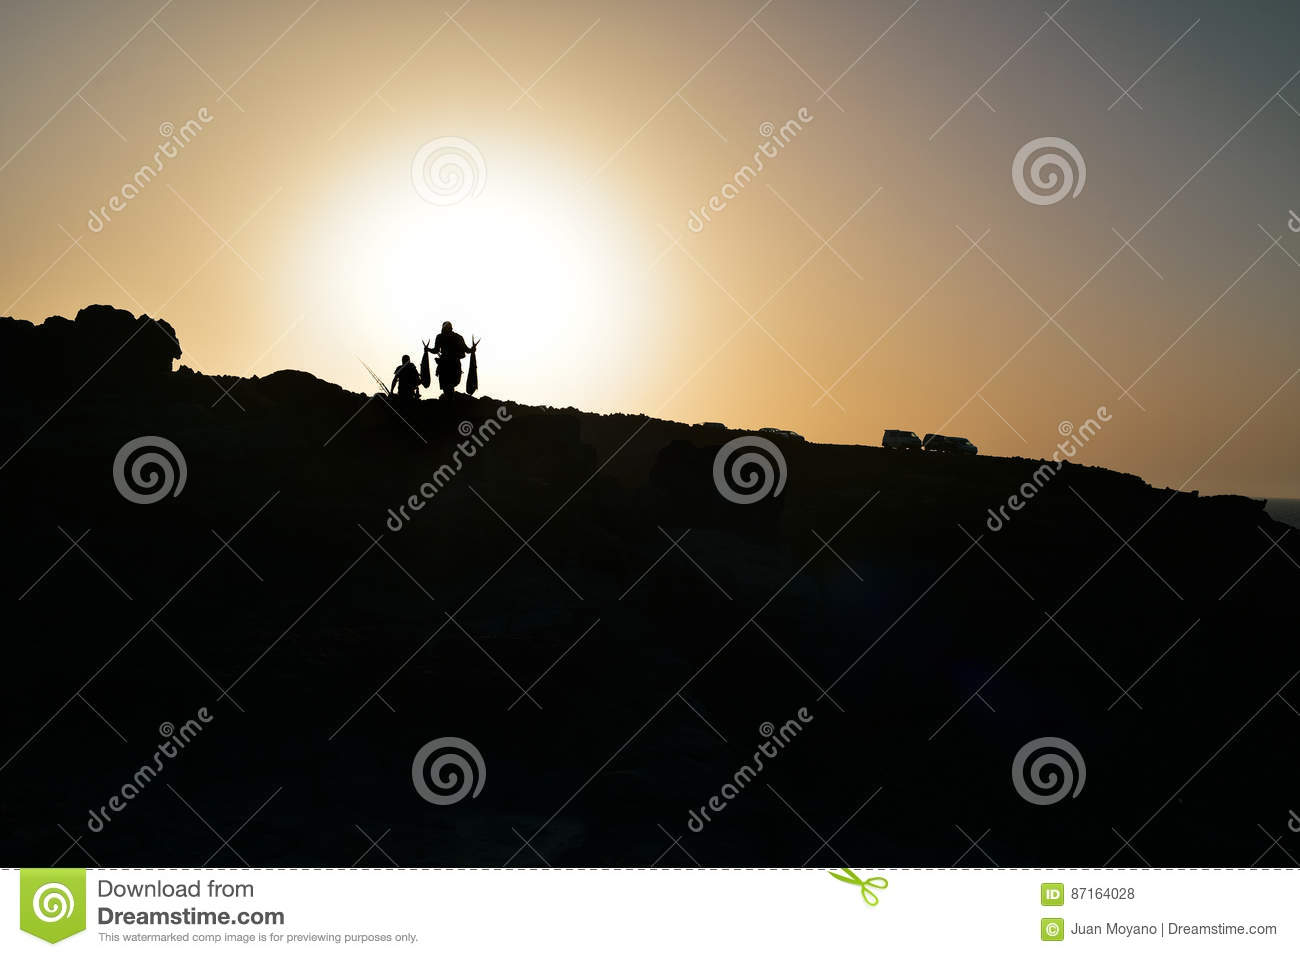 Silhouette of fishermen on a cliff at dusk